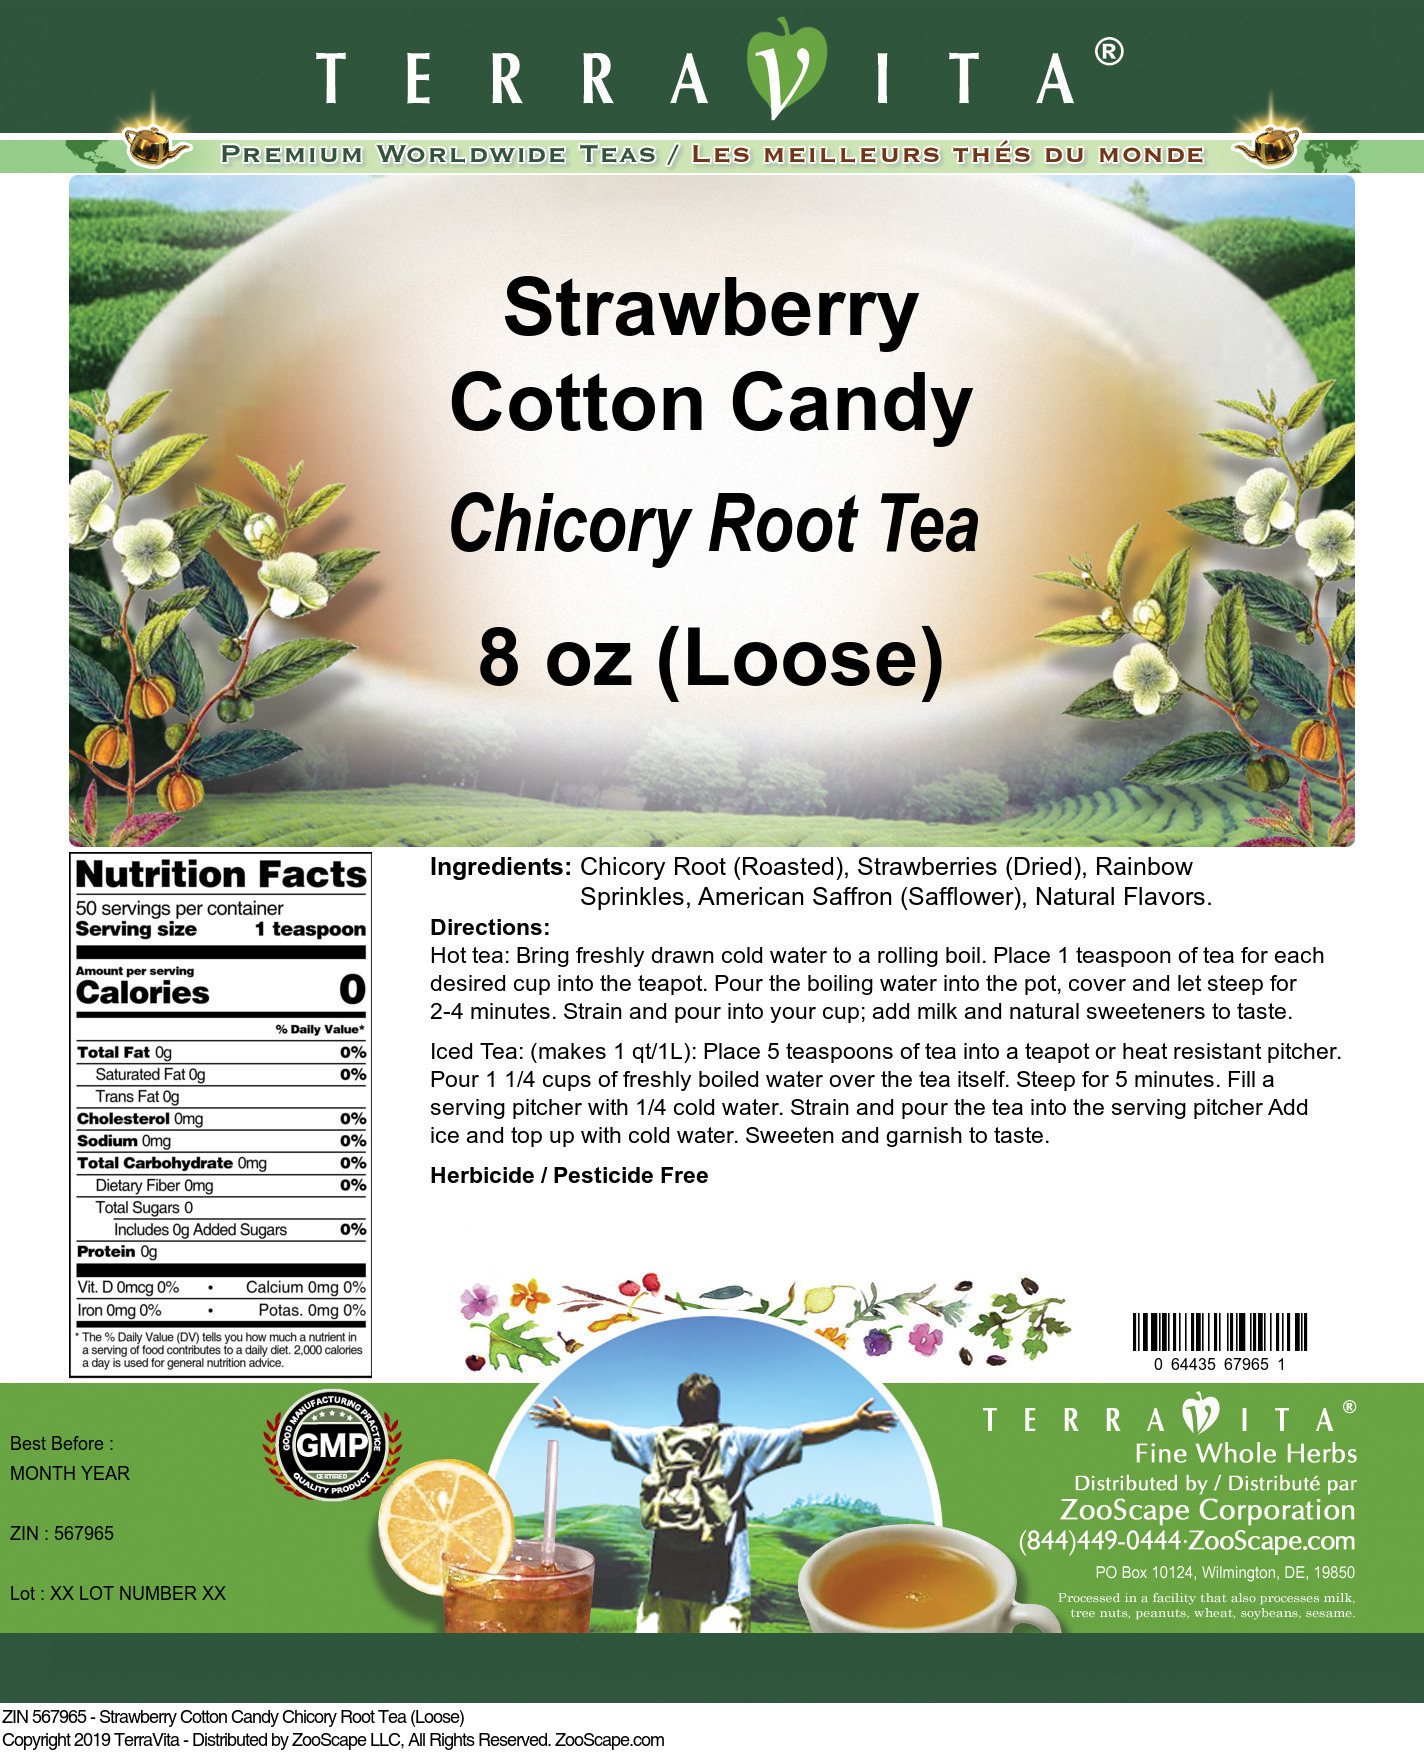 Strawberry Cotton Candy Chicory Root Tea (Loose)